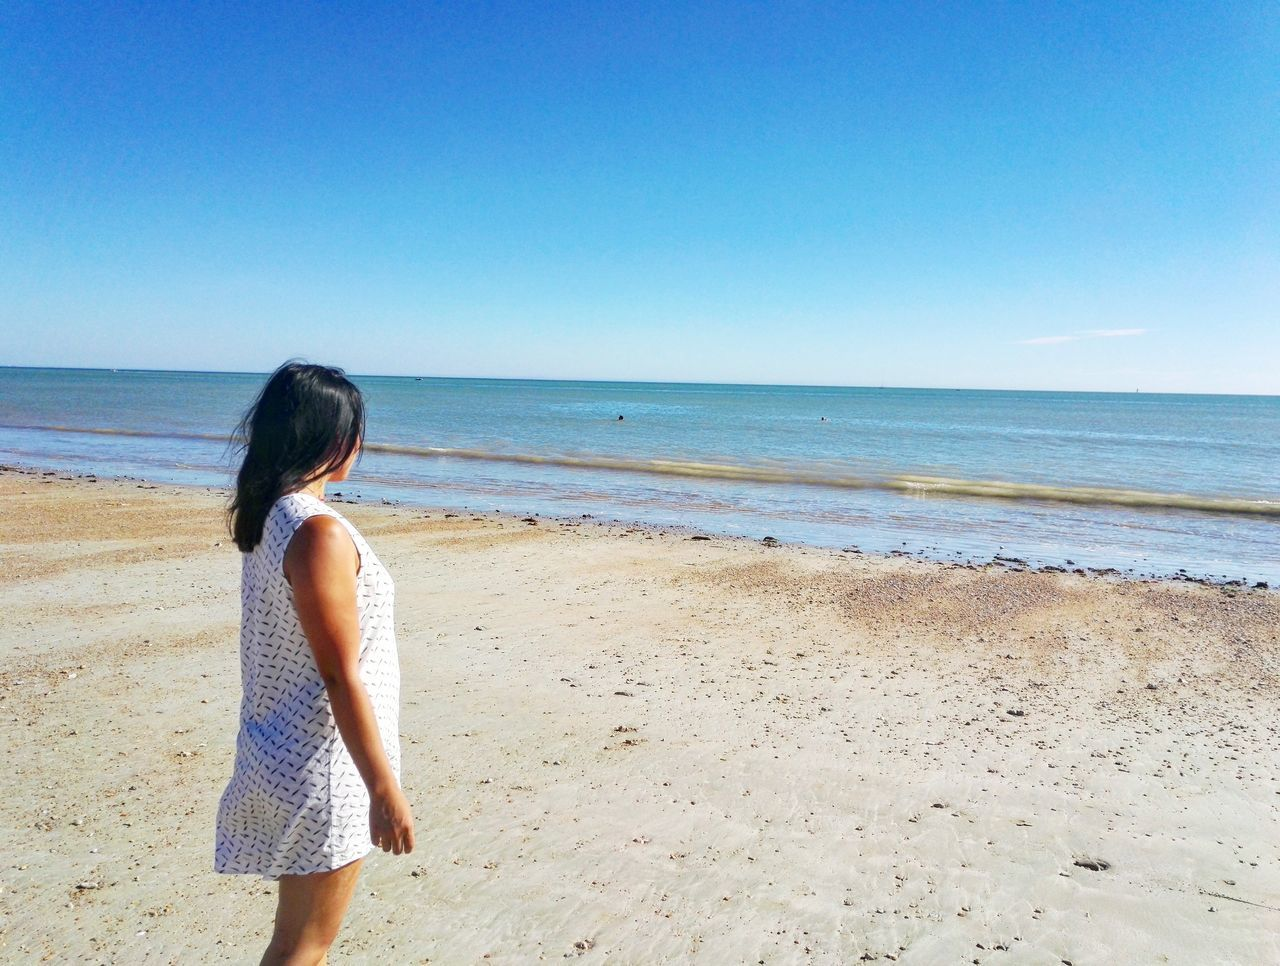 Sea Beach Water Standing Horizon Over Water Three Quarter Length Clear Sky Vacations Childhood Full Length Shore Scenics Casual Clothing Tranquil Scene Girls Blue Beauty In Nature Innocence Summer Tranquility Asiangirl Asian Girl Asian Beauty Asianstyle